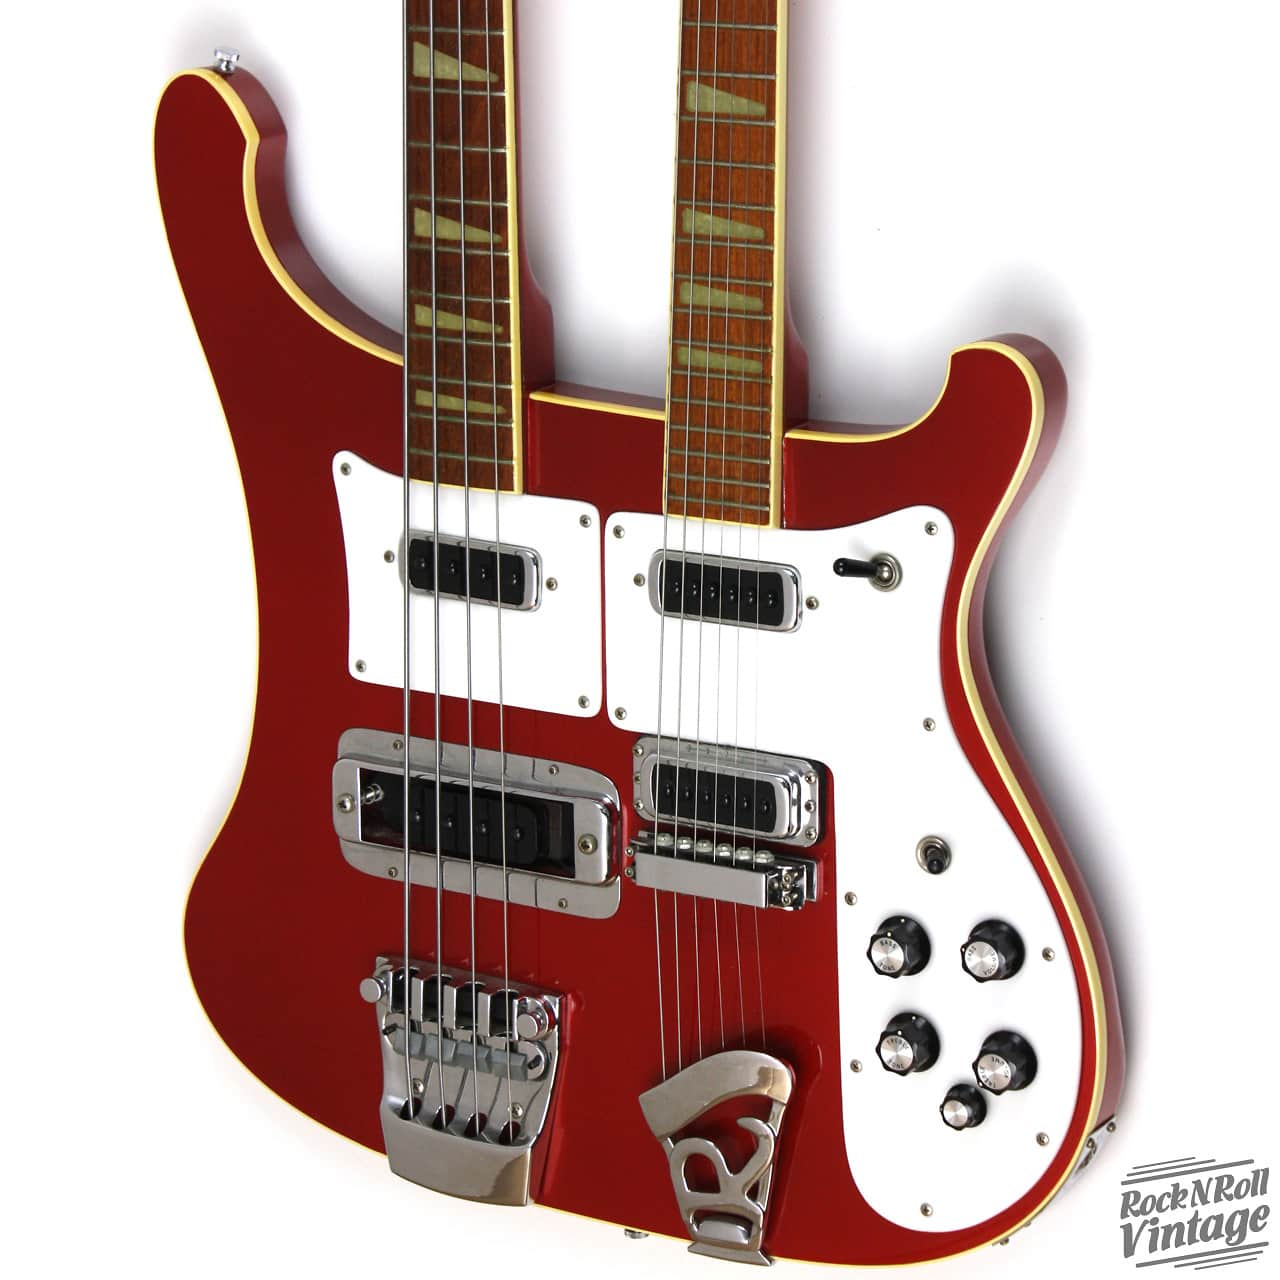 1983 rickenbacker 4080 double neck guitar bass ruby red reverb. Black Bedroom Furniture Sets. Home Design Ideas